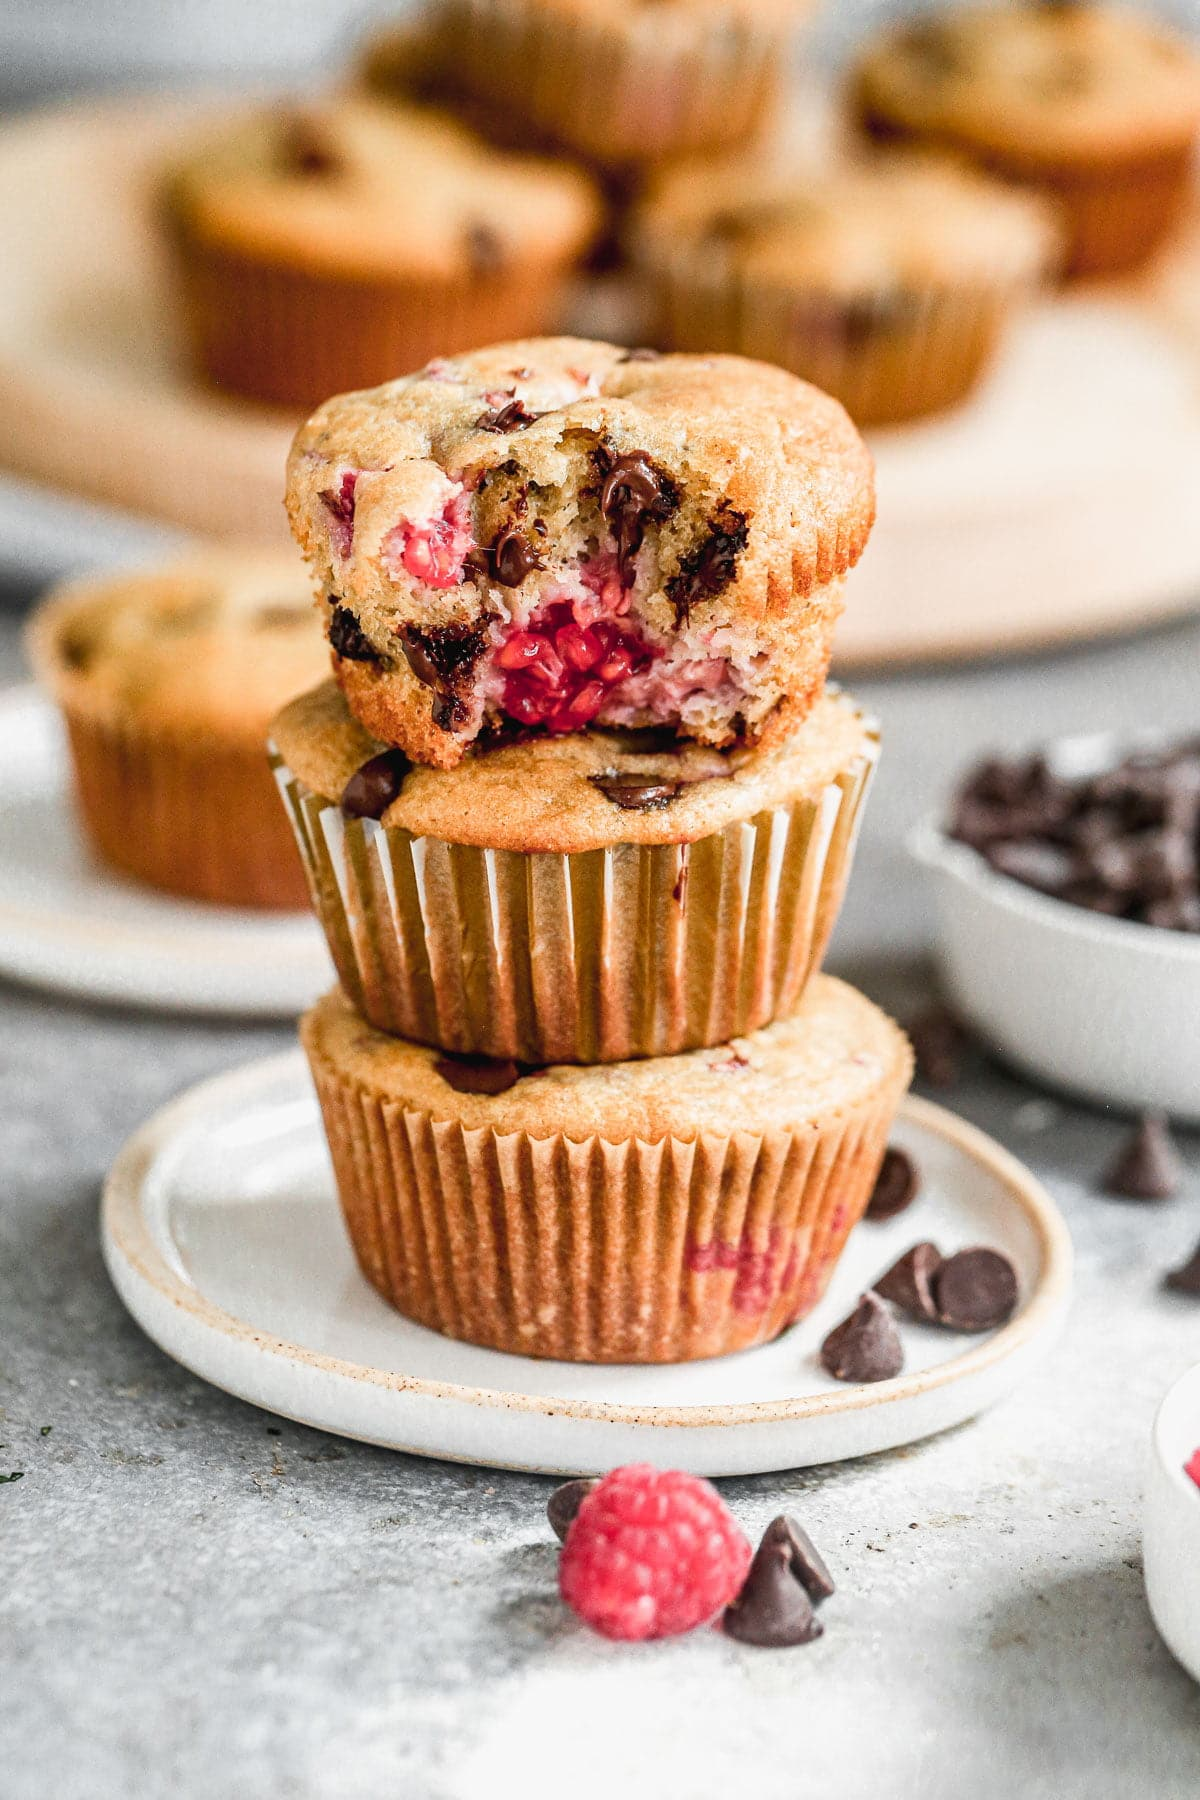 These one bowl Chocolate Raspberry Muffins are light, fluffy and full of gooey chocolate raspberry flavor. Made with protein-packed Greek yogurt, coconut oil and whole-wheat flour, they also have a good dose of healthiness so you don't have to feel completely guilty indulging. Perfect way to kickstart your day or nestle in a sweet pick-me-up in the afternoon.